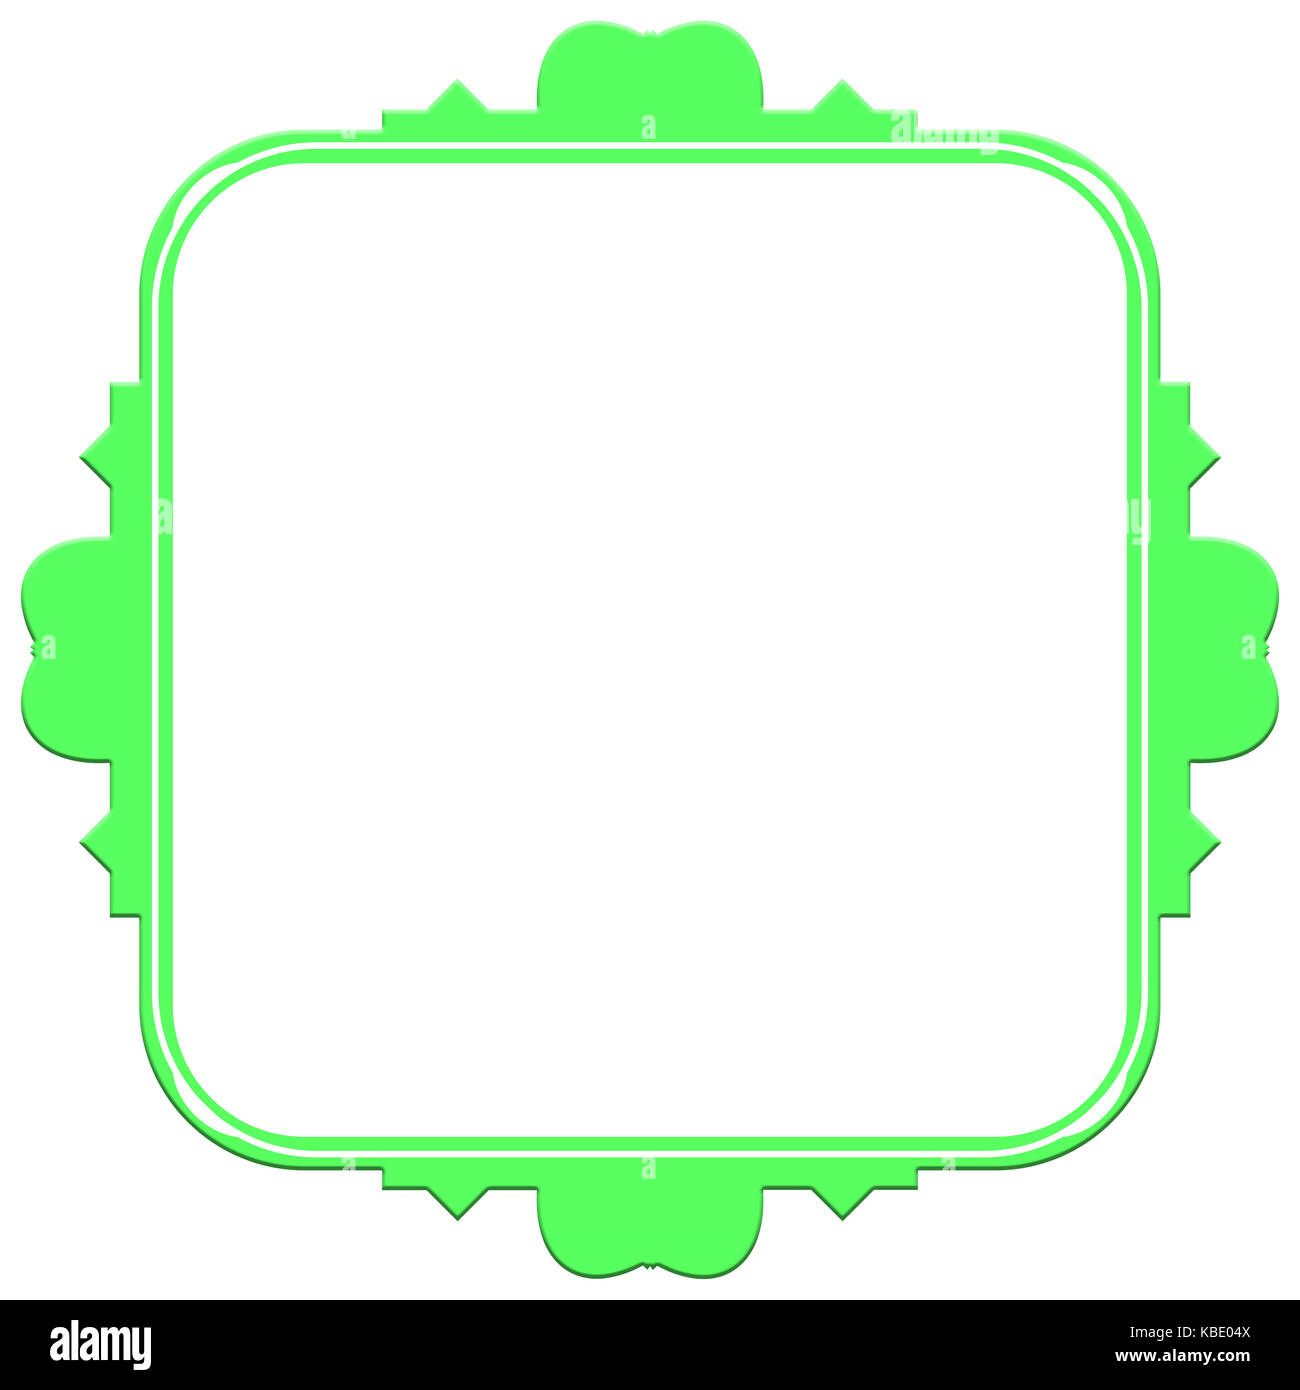 Vintage green frame on a white background - Stock Image